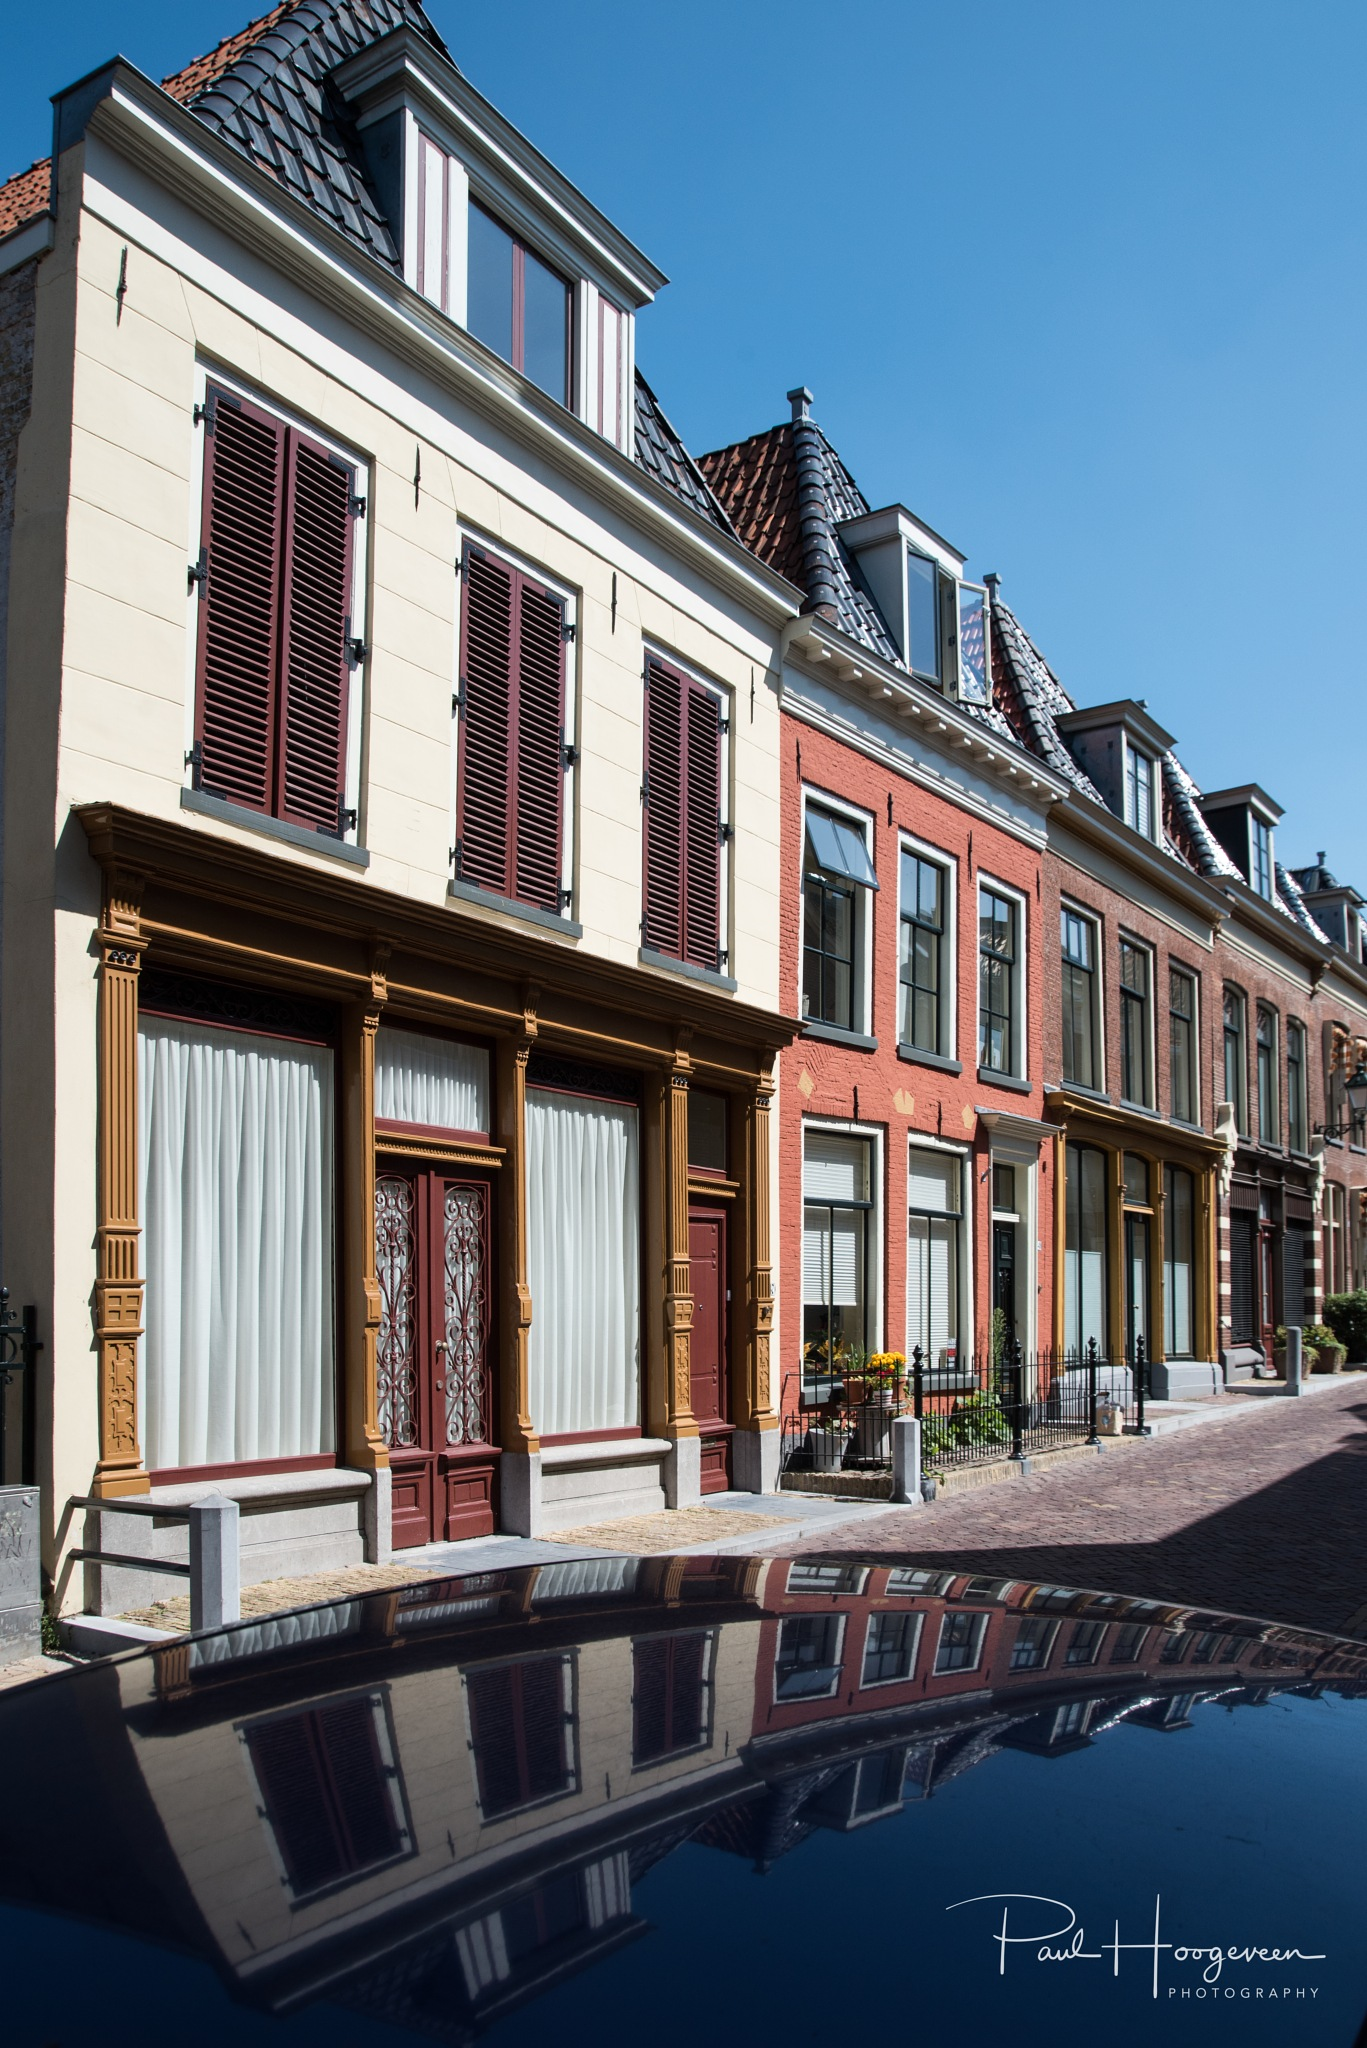 Architecture reflections by Paul Hoogeveen Photography